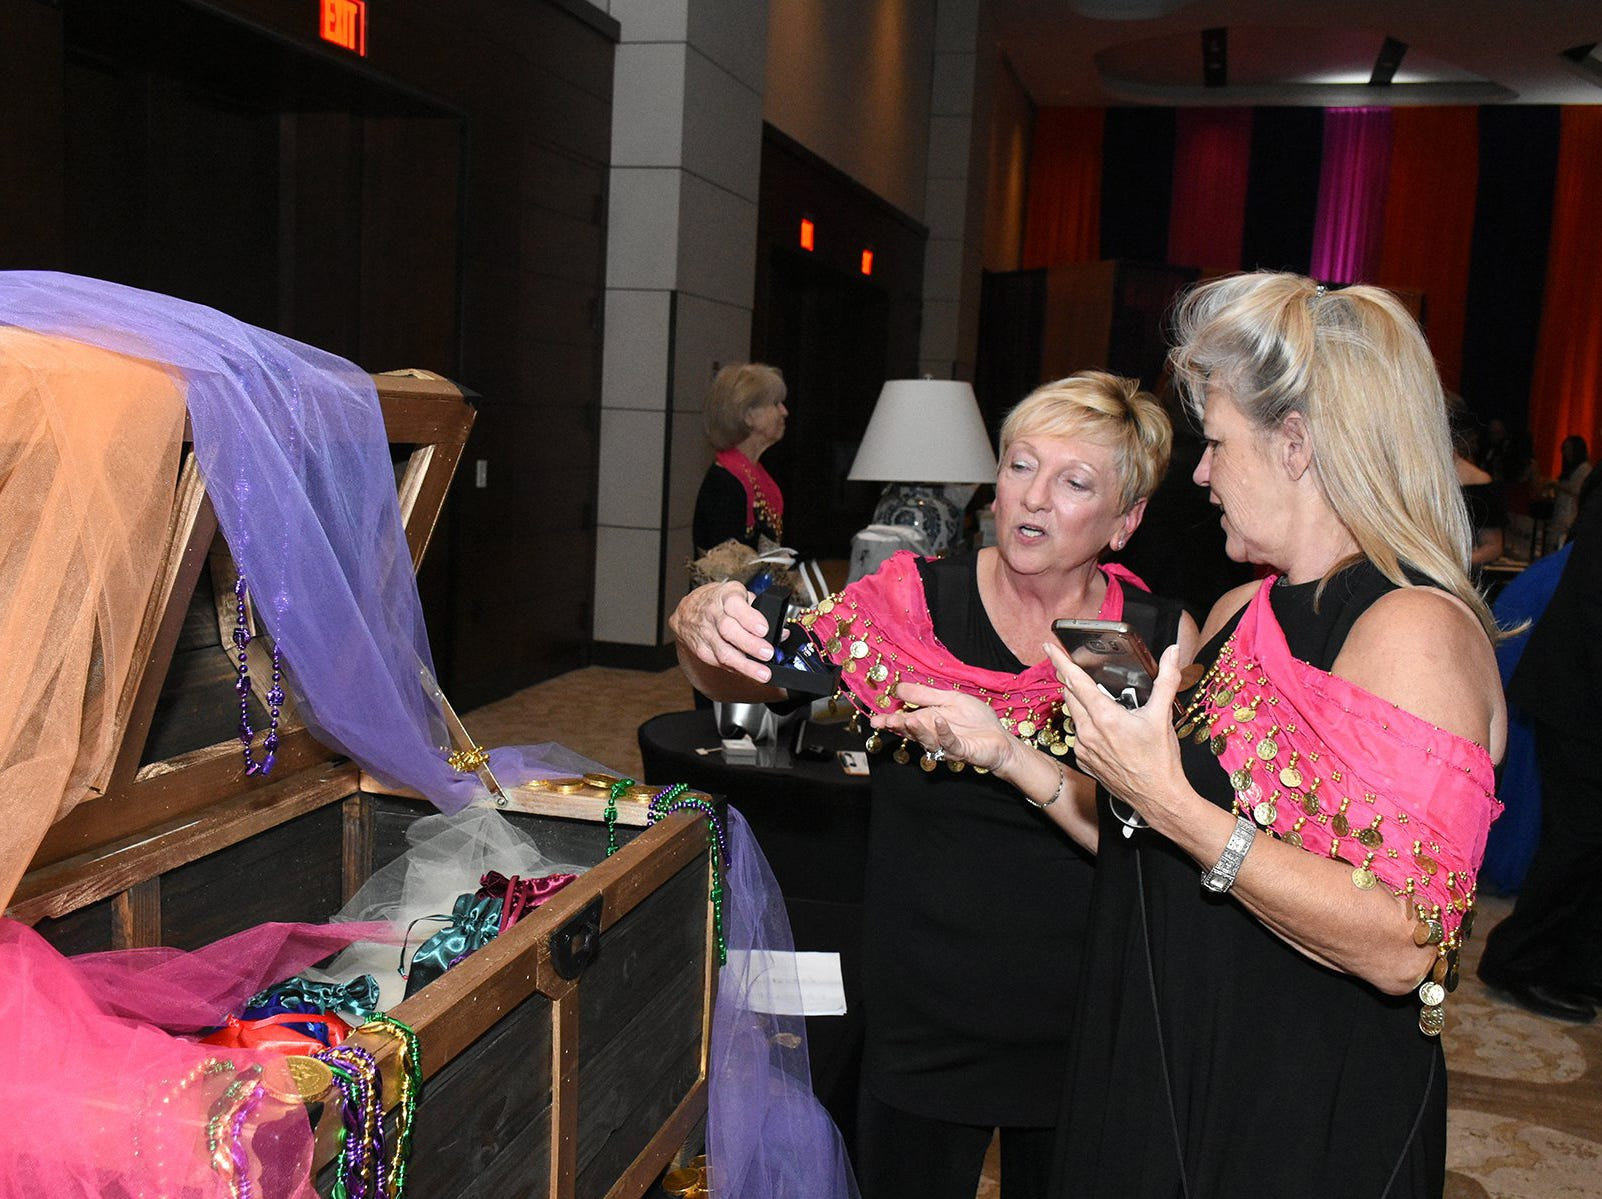 Kathi Swaja, left, and Shelley Slechta inspect the two carat diamond earrings from Kathein Jewelers of Marco. The Marco Island unit of the American Cancer Society held the Imagination Ball Friday evening at the JW Marriott hotel, raising funds to continue the fight against cancer.